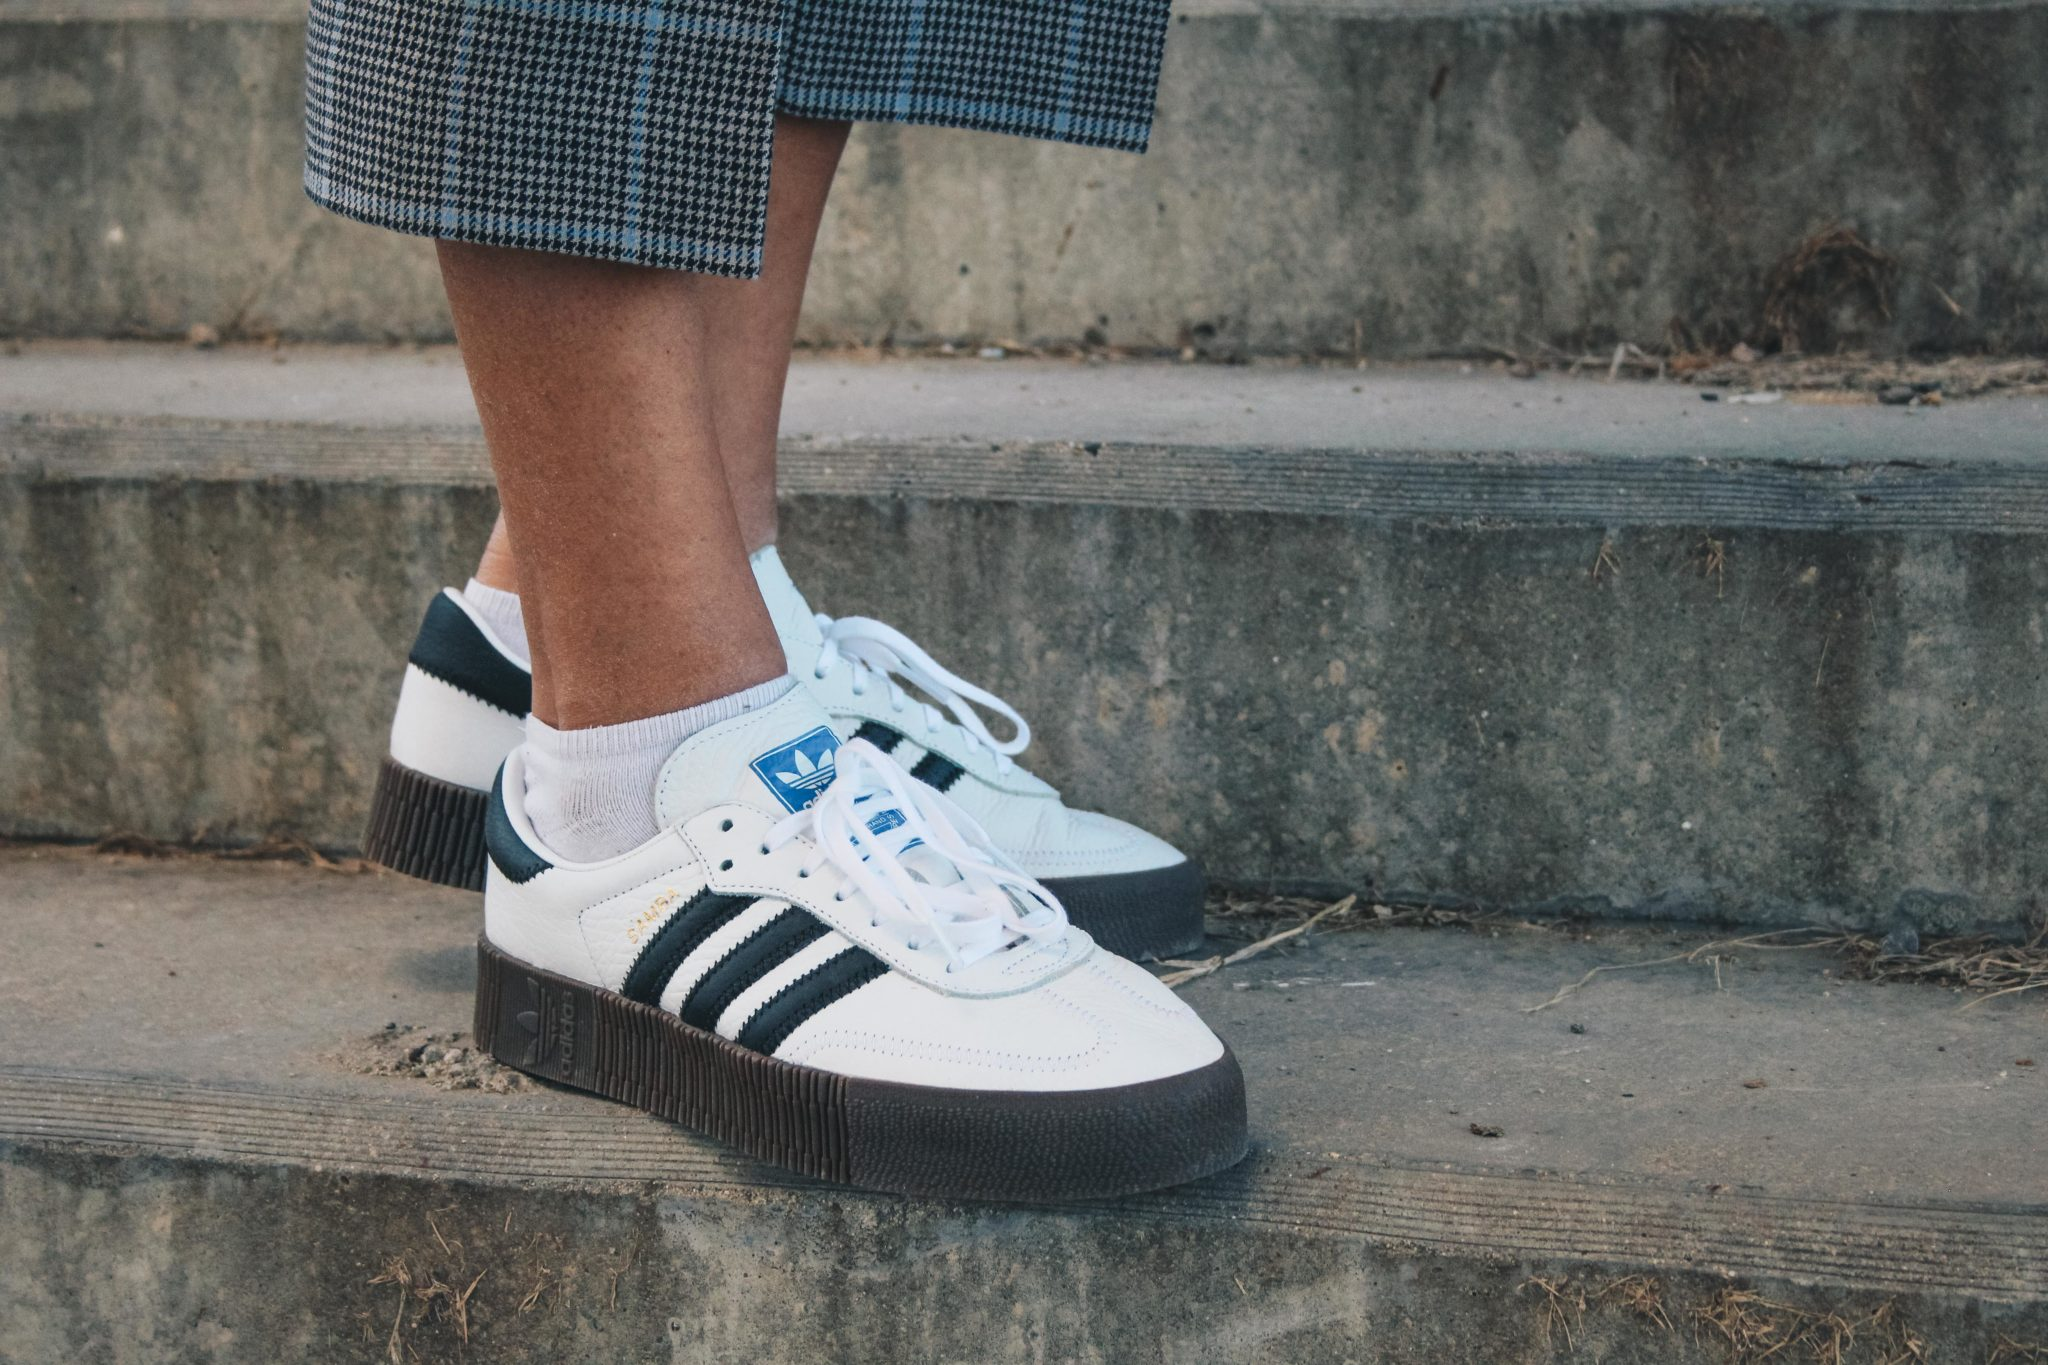 Adidas Originals Sambarose white women outfit, style by Bulgarian fashion blogger Michaella from Quite a Looker